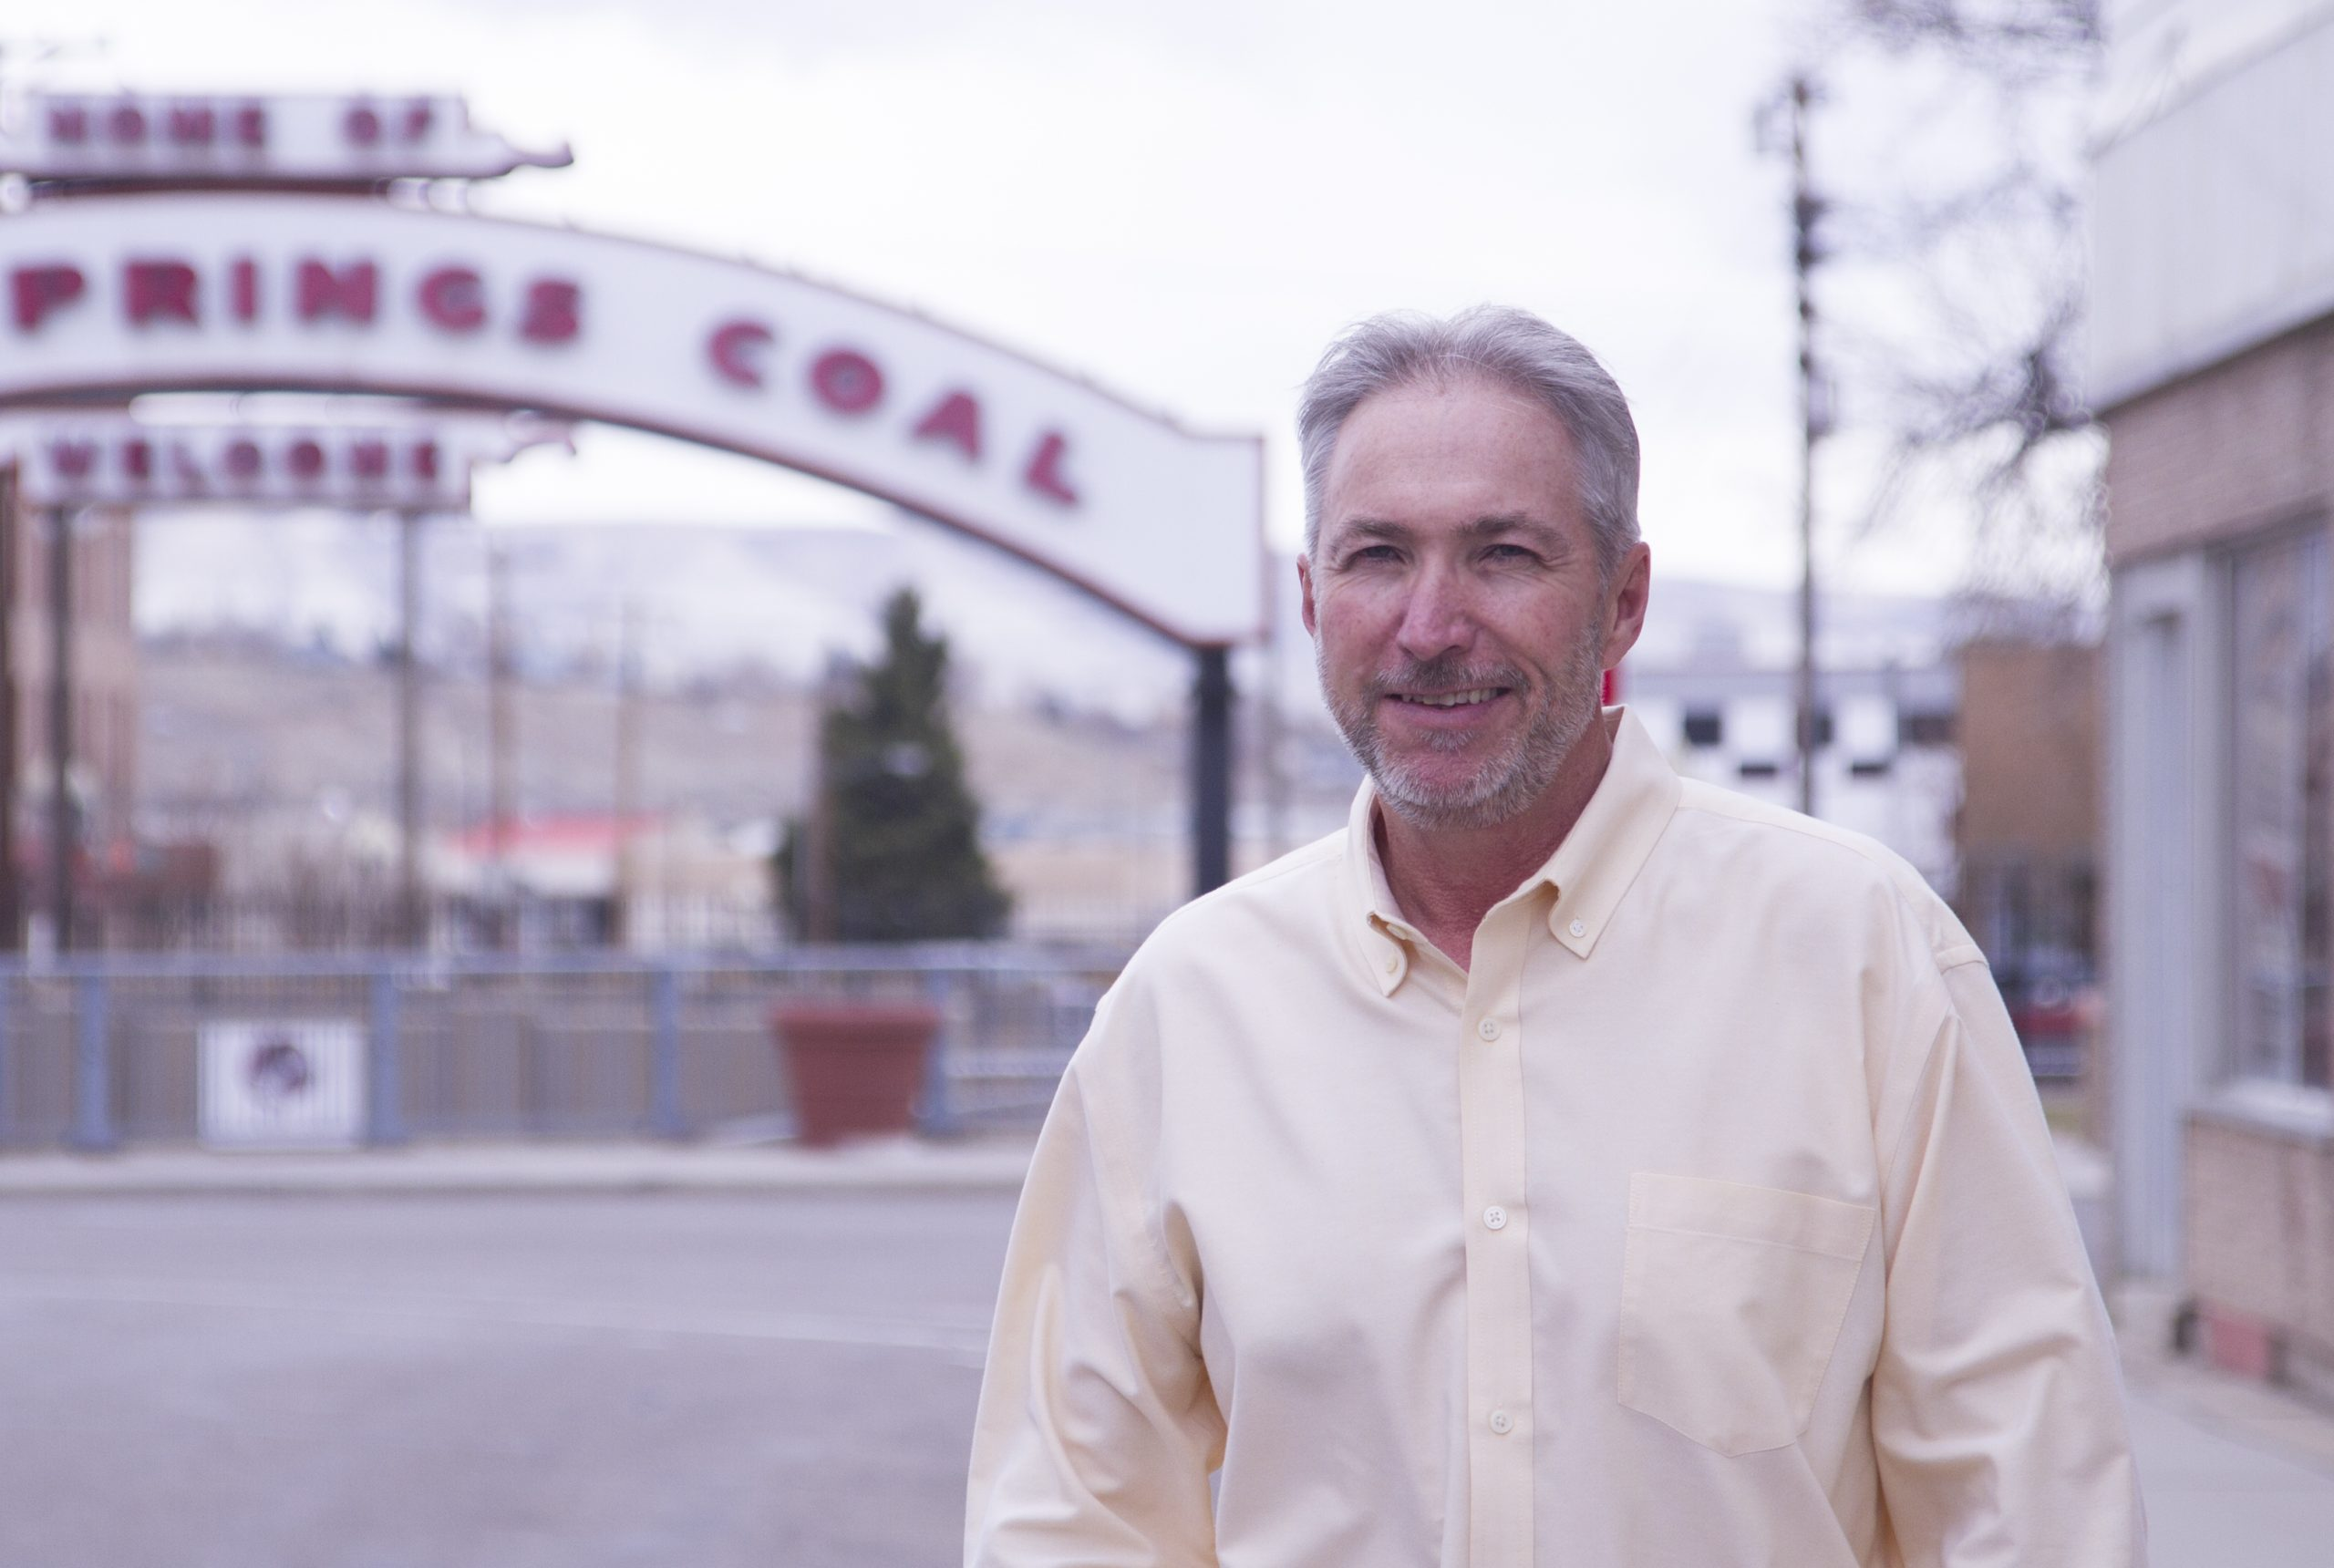 Local Businessman, Life-long Resident and Past Mayor of Rock Springs Tim Kaumo Announces Candidacy for Mayor of Rock Springs in the 2018 Election